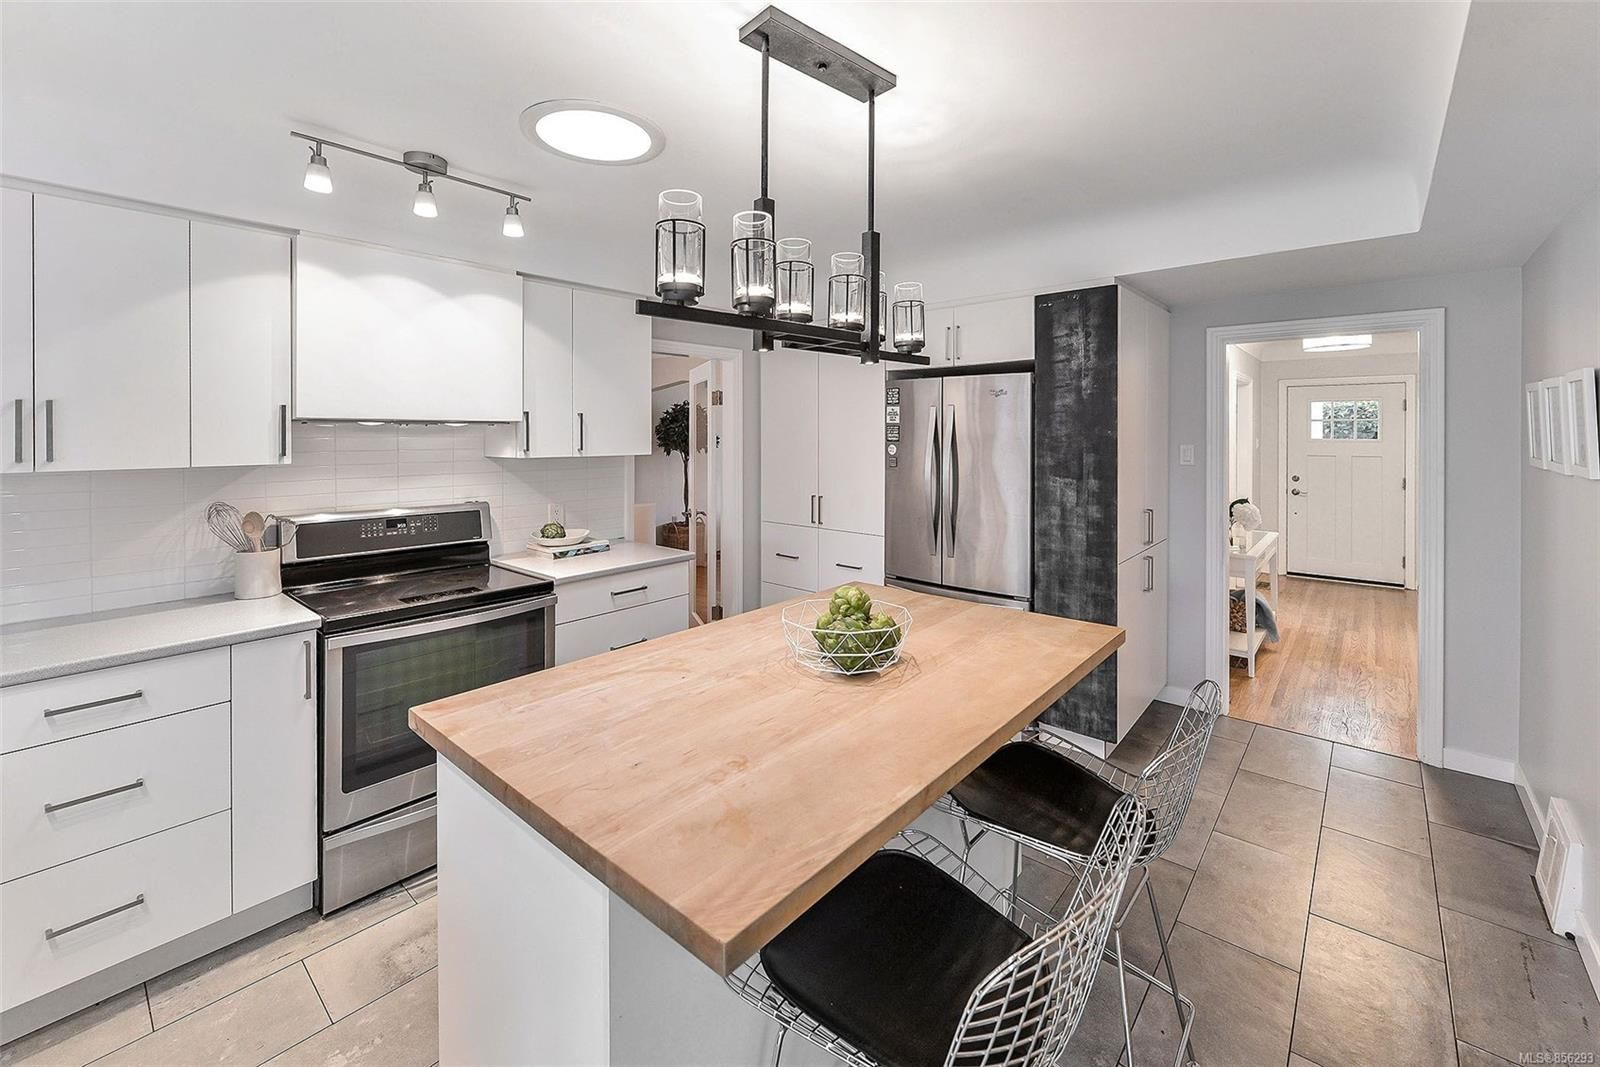 Photo 10: Photos: 1753 Armstrong Ave in : OB North Oak Bay House for sale (Oak Bay)  : MLS®# 856293